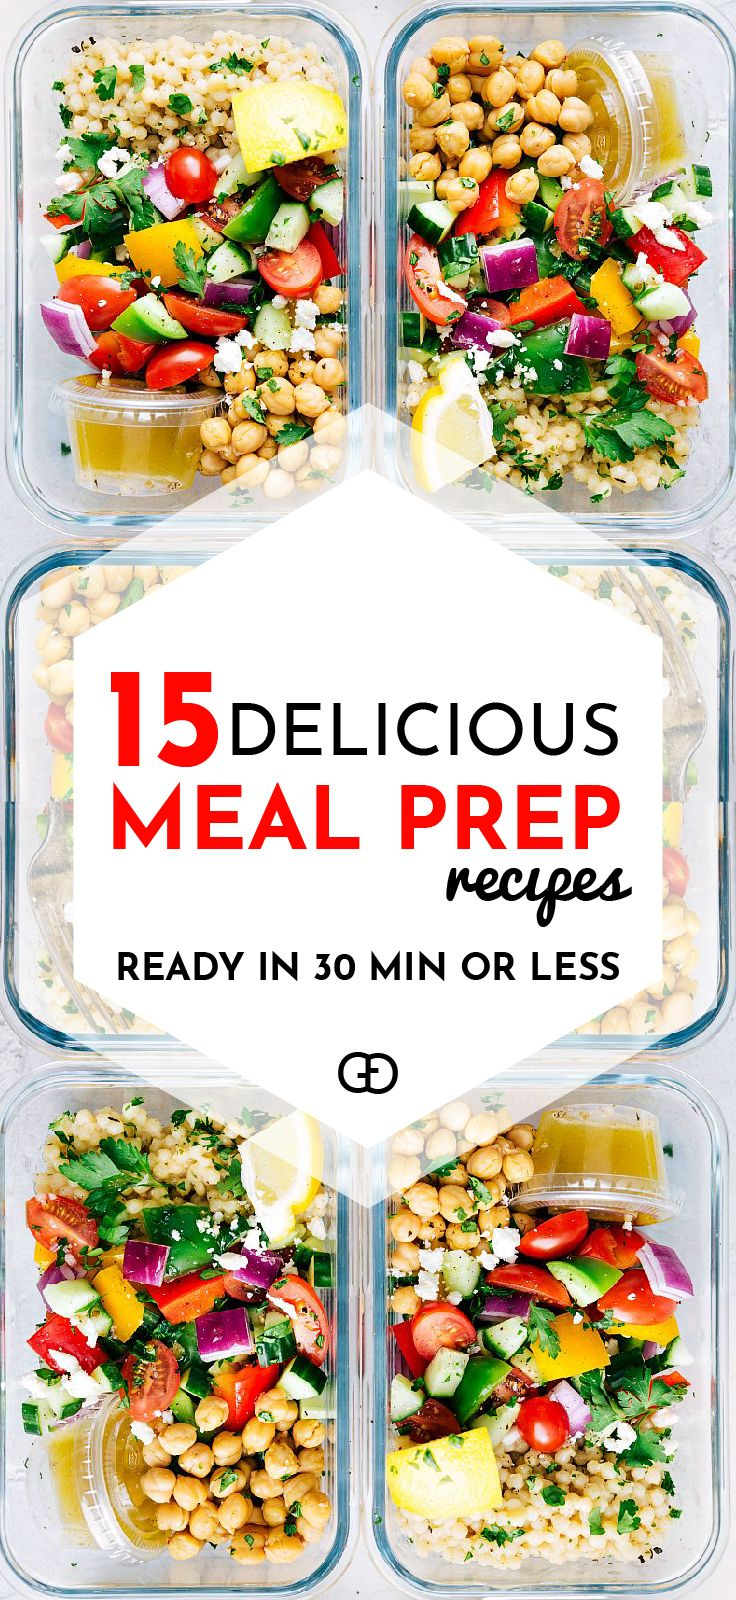 Meal Prep Recipes Ideas Avoid Packaged Food Cravings And Frozen Meals This Week By Preparing Nutritious Brea Easy Healthy Meal Prep Meals Vegetarian Meal Prep